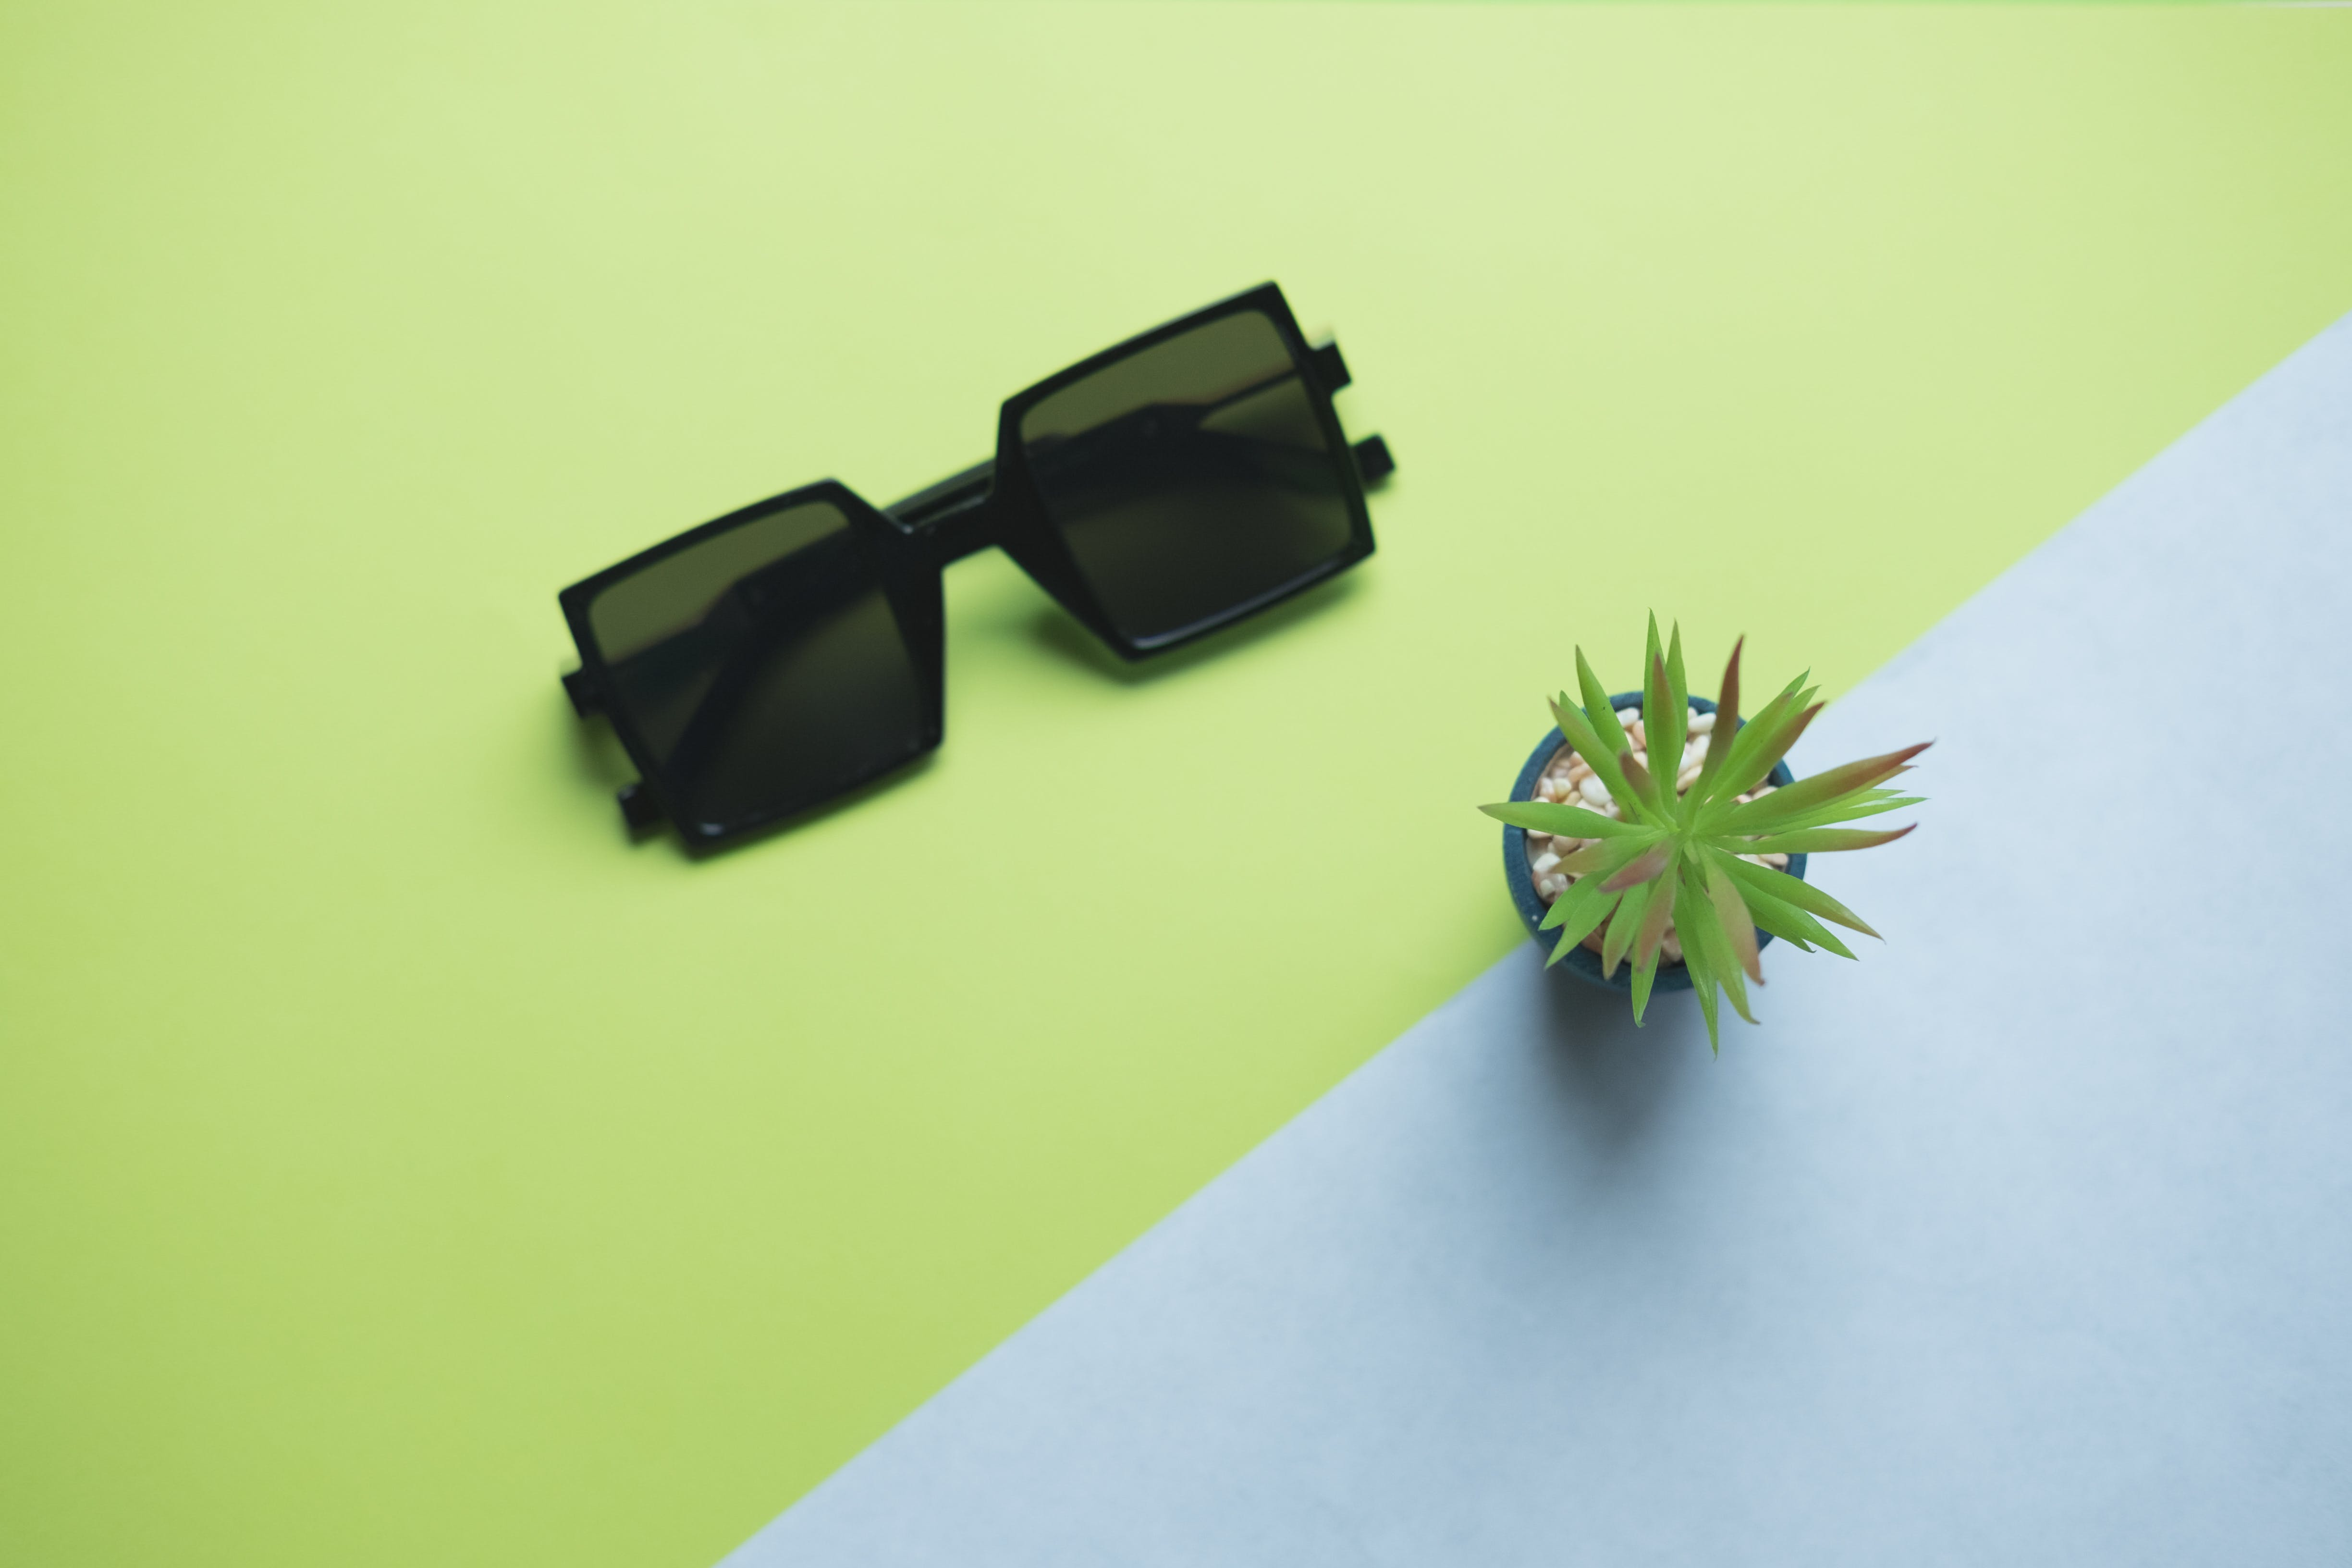 Black Sunglasses Beside Succulent Plant